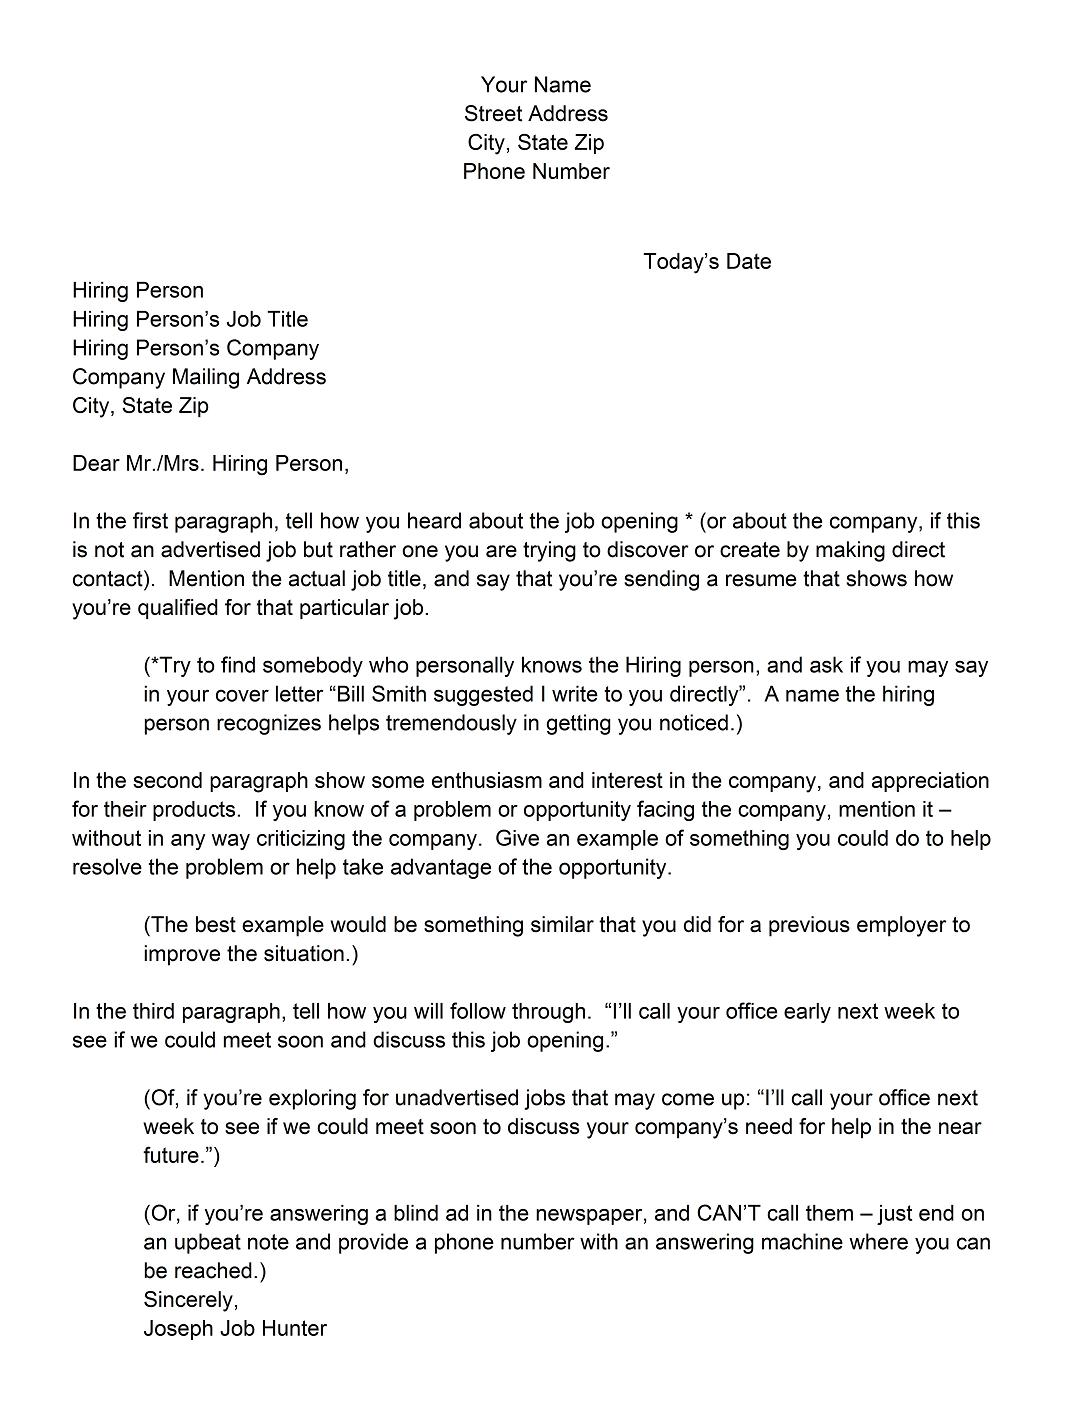 howto write a cover letter - 5 way to writing the best cover letter example for resume